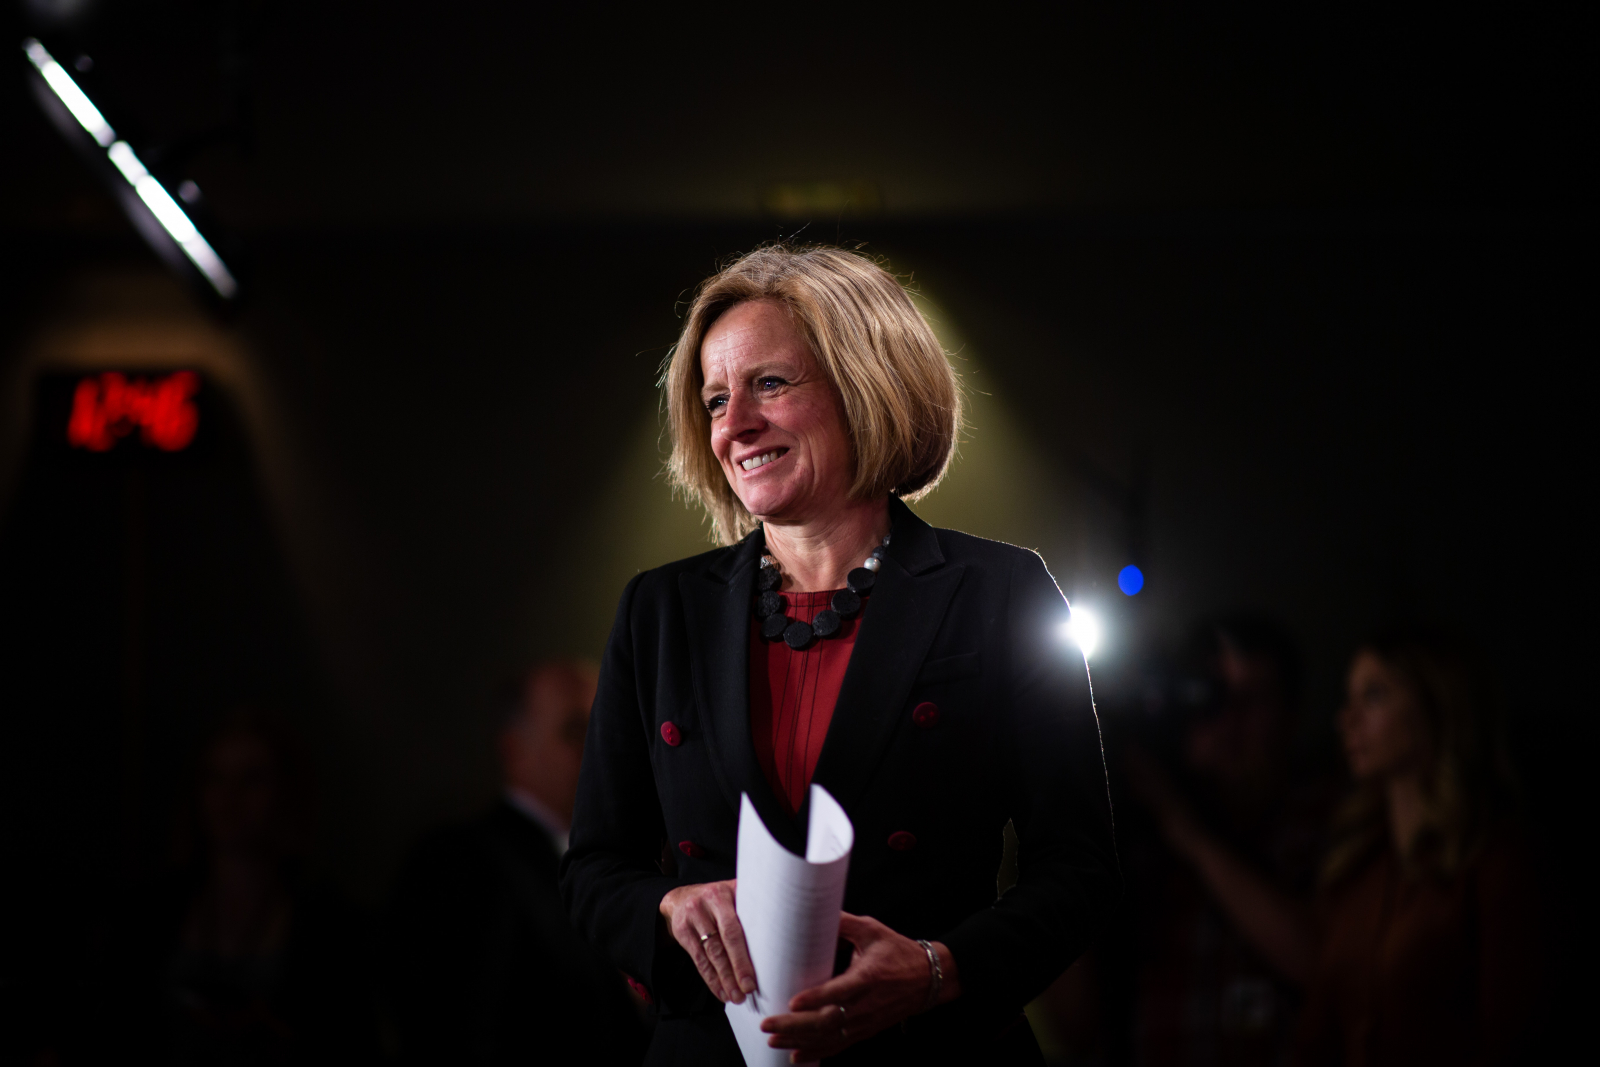 Rachel Notley, Kinder Morgan, Trans Mountain, Ottawa